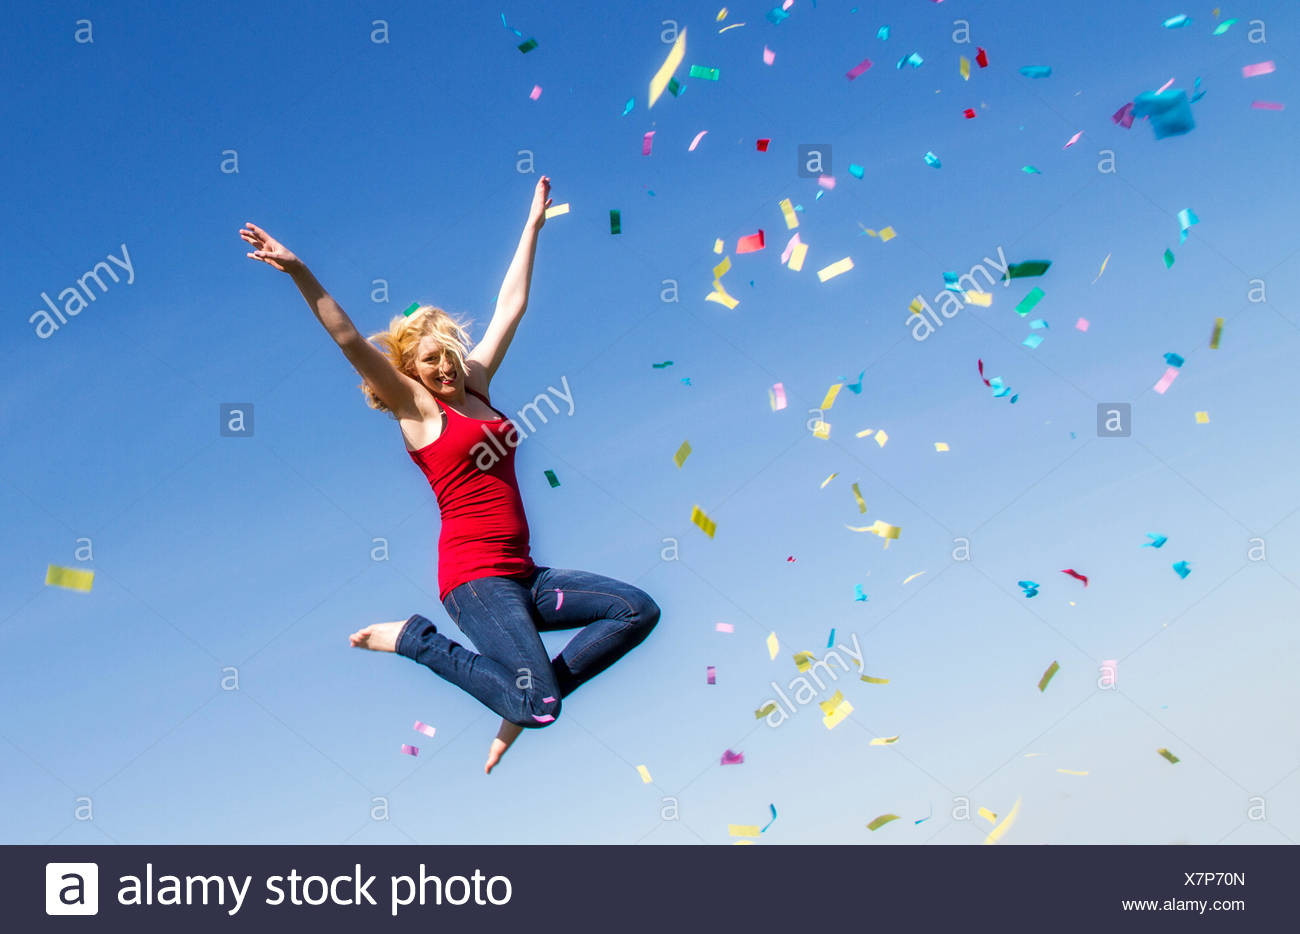 Young woman jumping with confetti - Stock Image